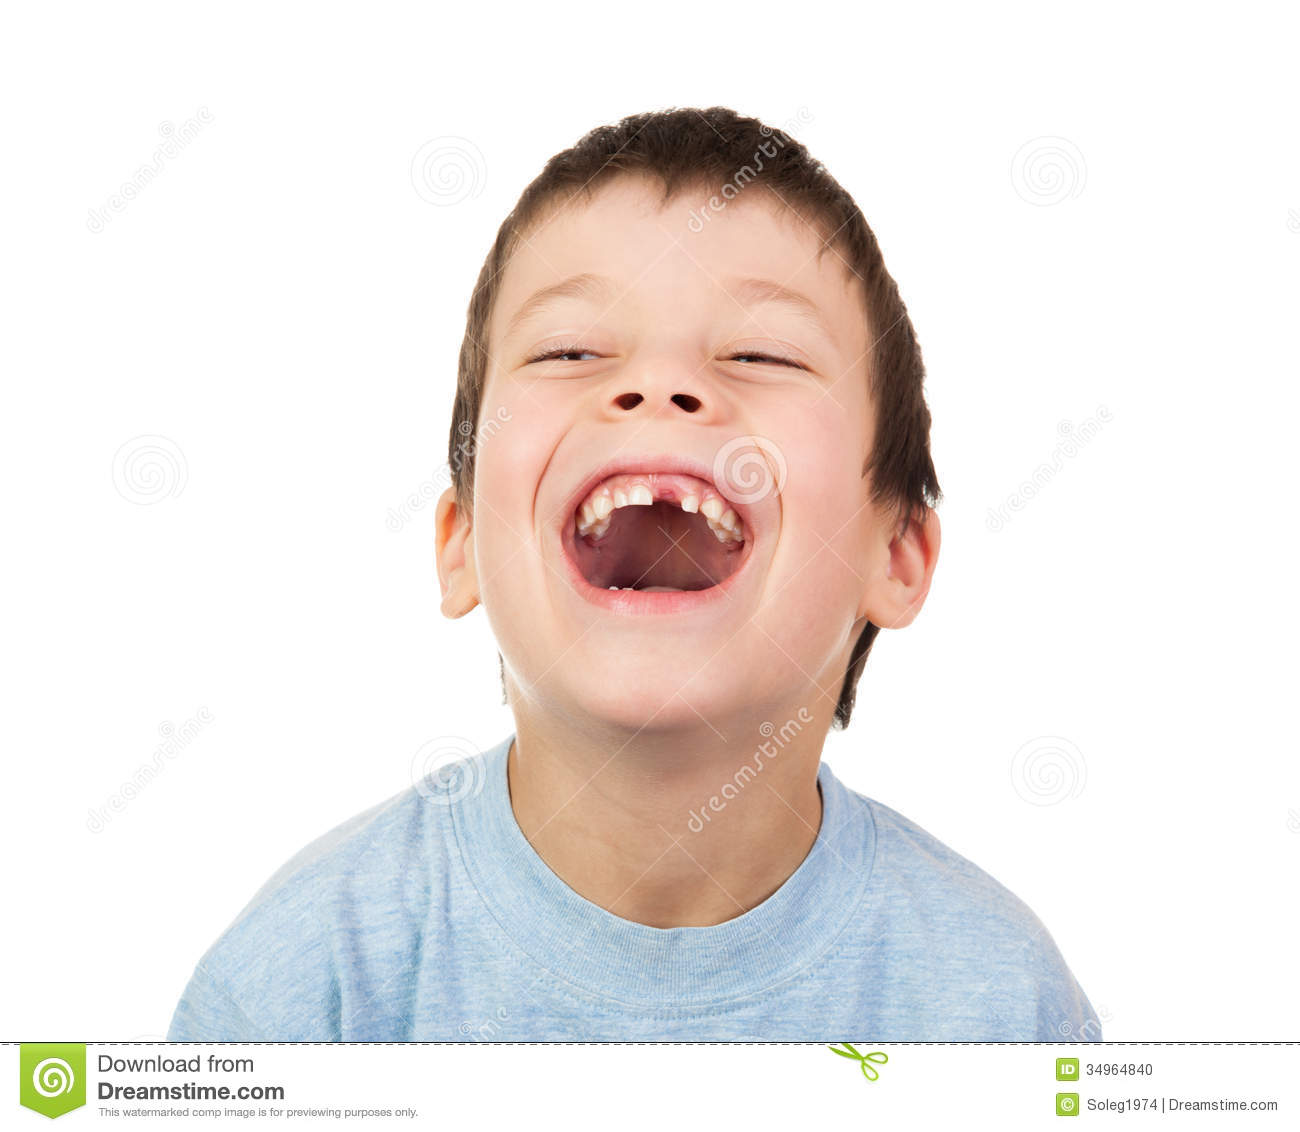 Http Www Dreamstime Com Stock Photo Boy Lost Tooth Laugh Isolated Image34964840